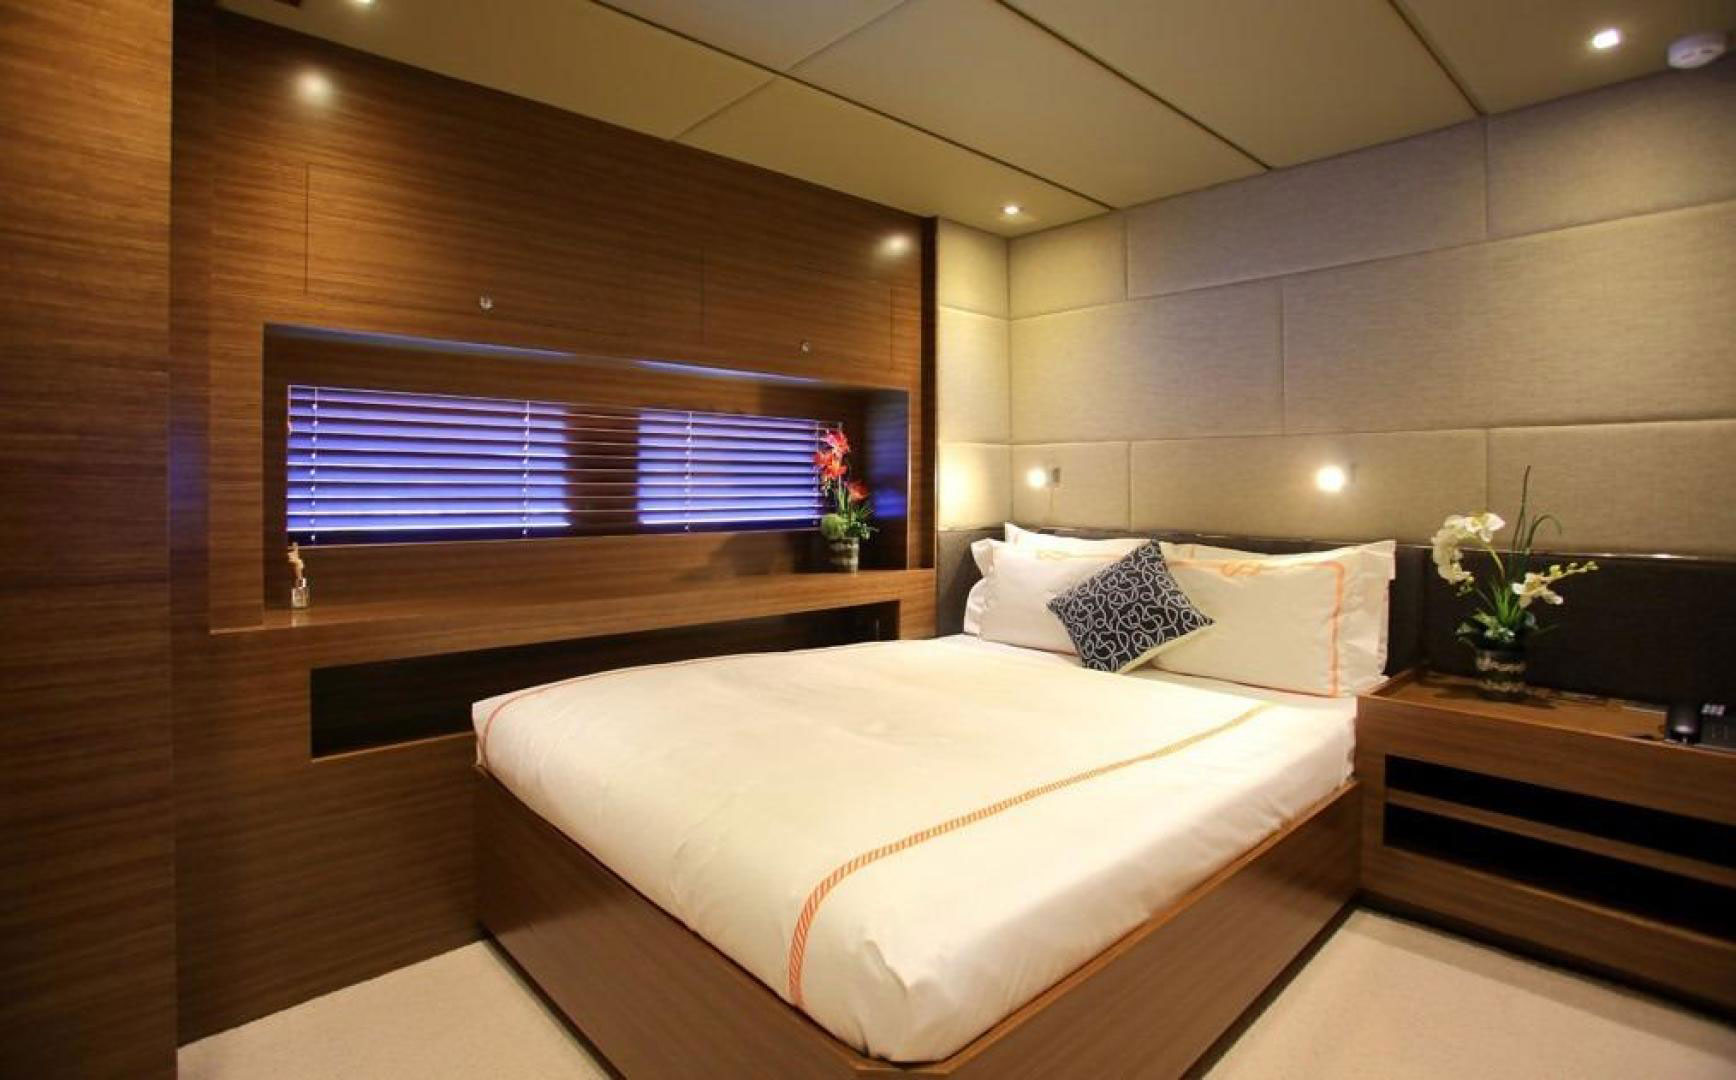 150-ft.-Luxury-Power-Yacht-–-Up-to-200-People-stateroom